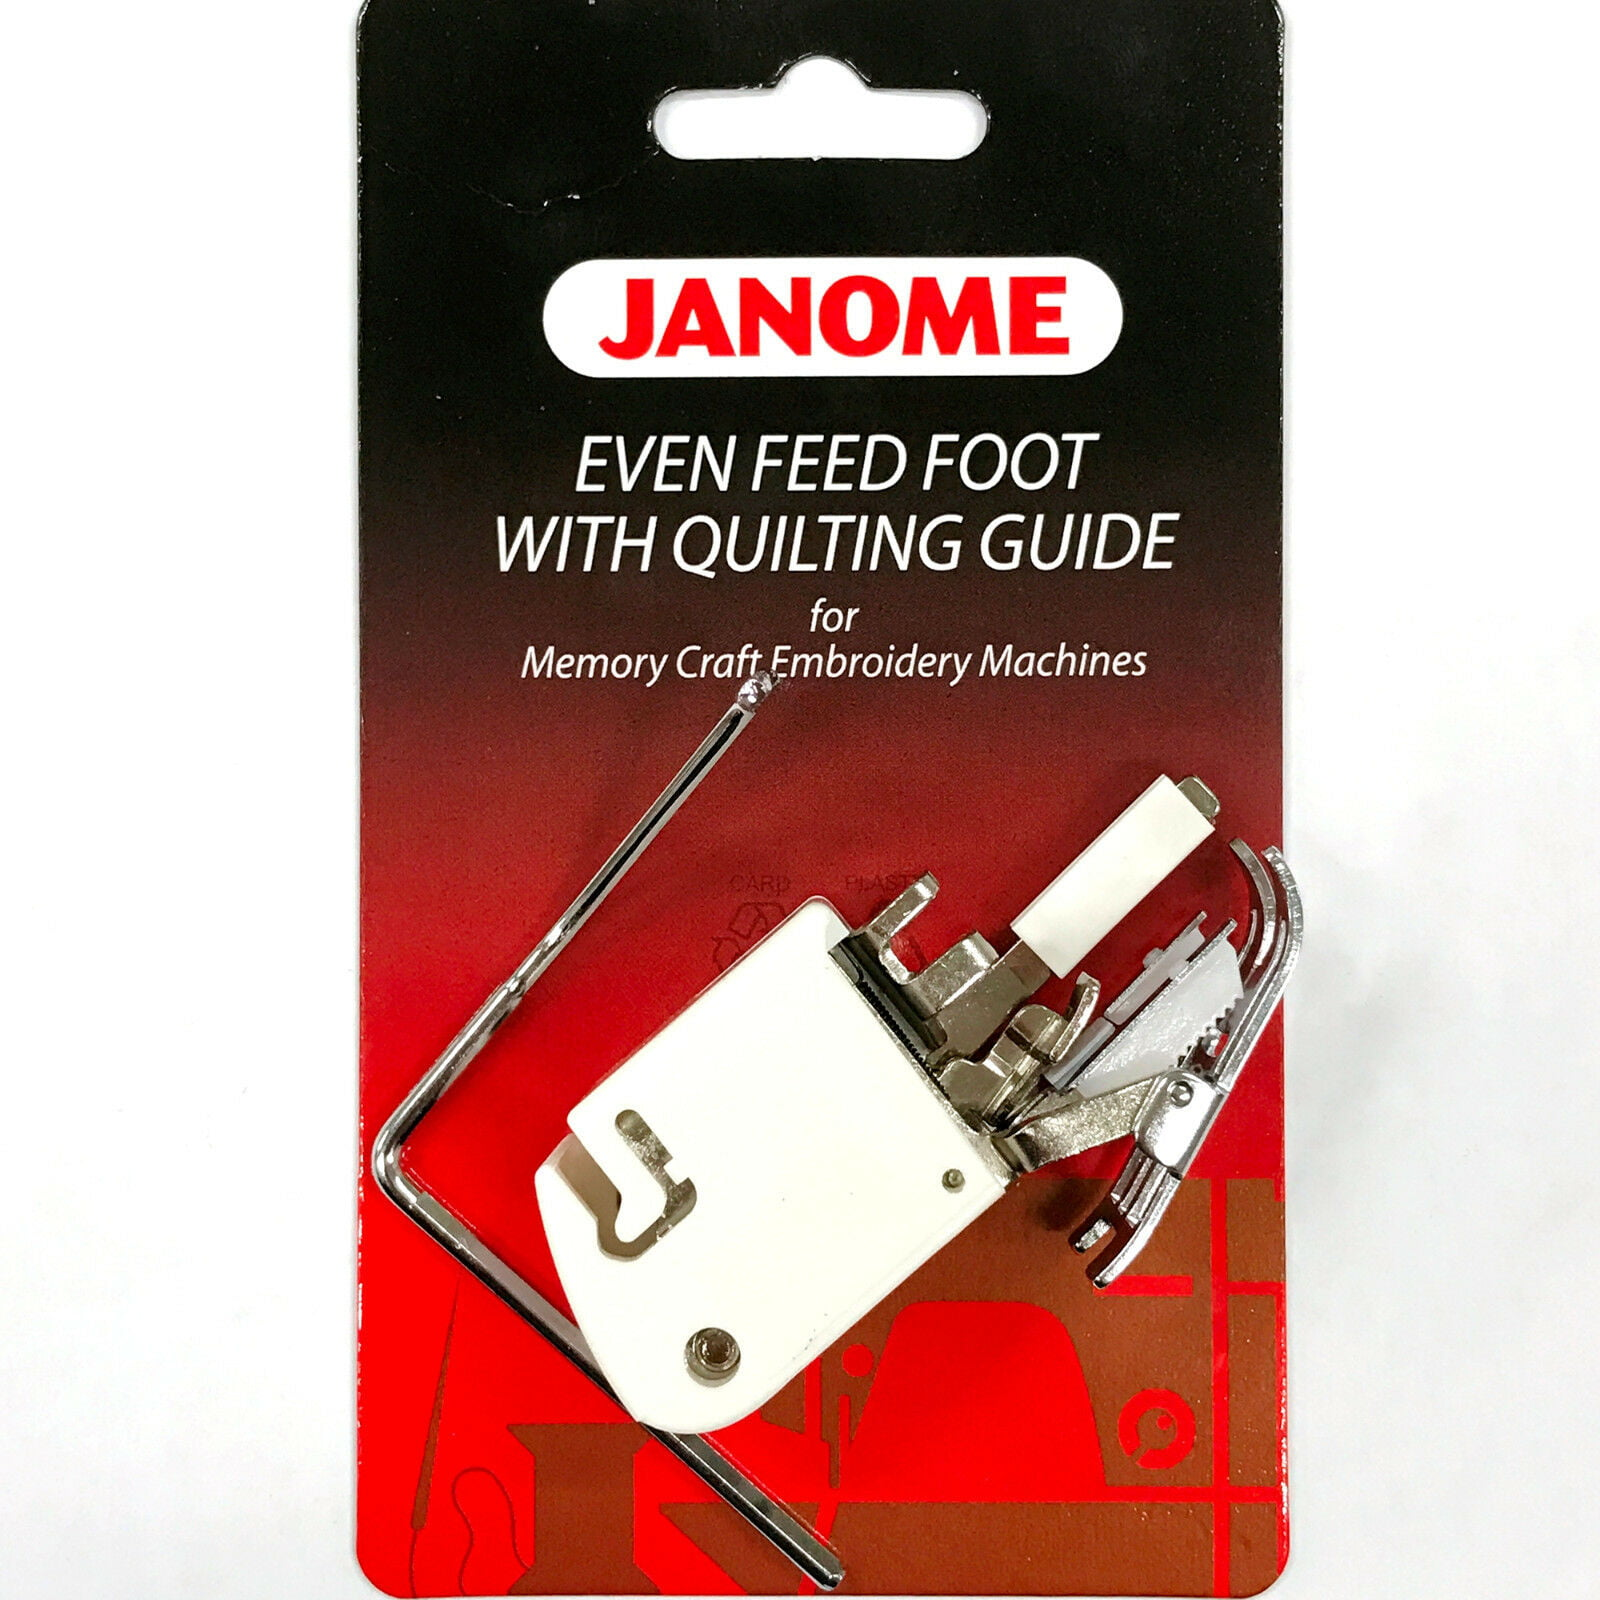 Janome Even Feed Foot with Quilting Guide Memory Craft Embroidery Machines